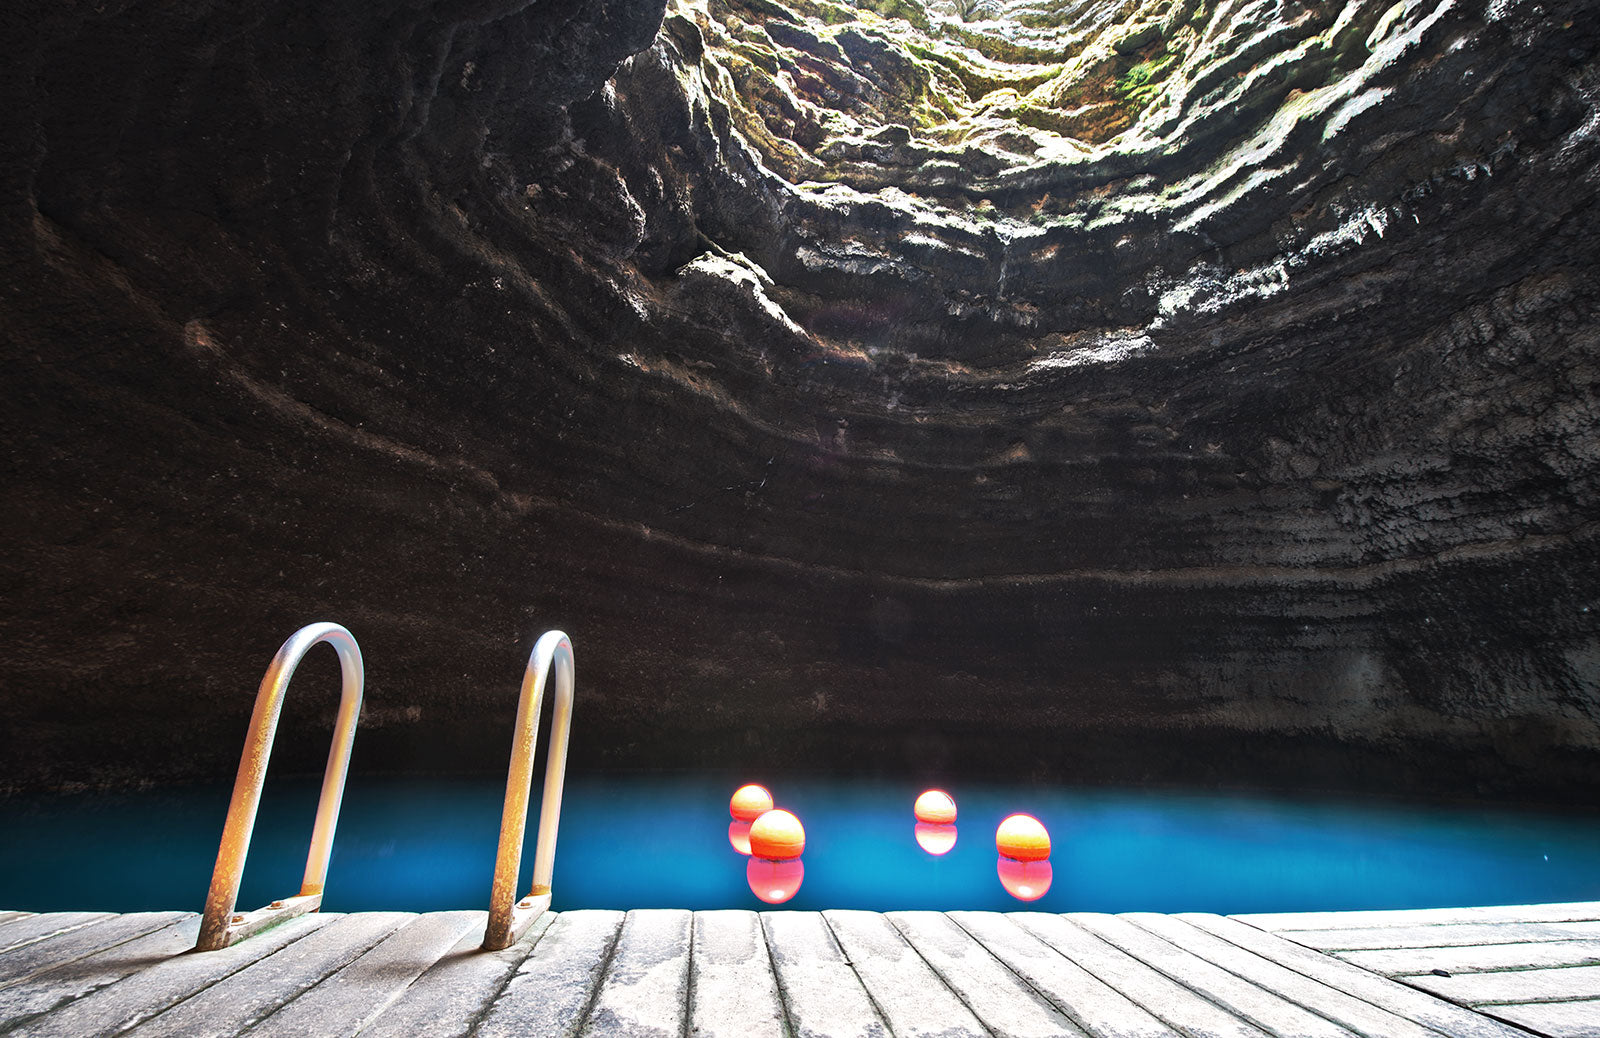 6 Utah swimming holes perfect for your swimsuit. I need to visit all of these!